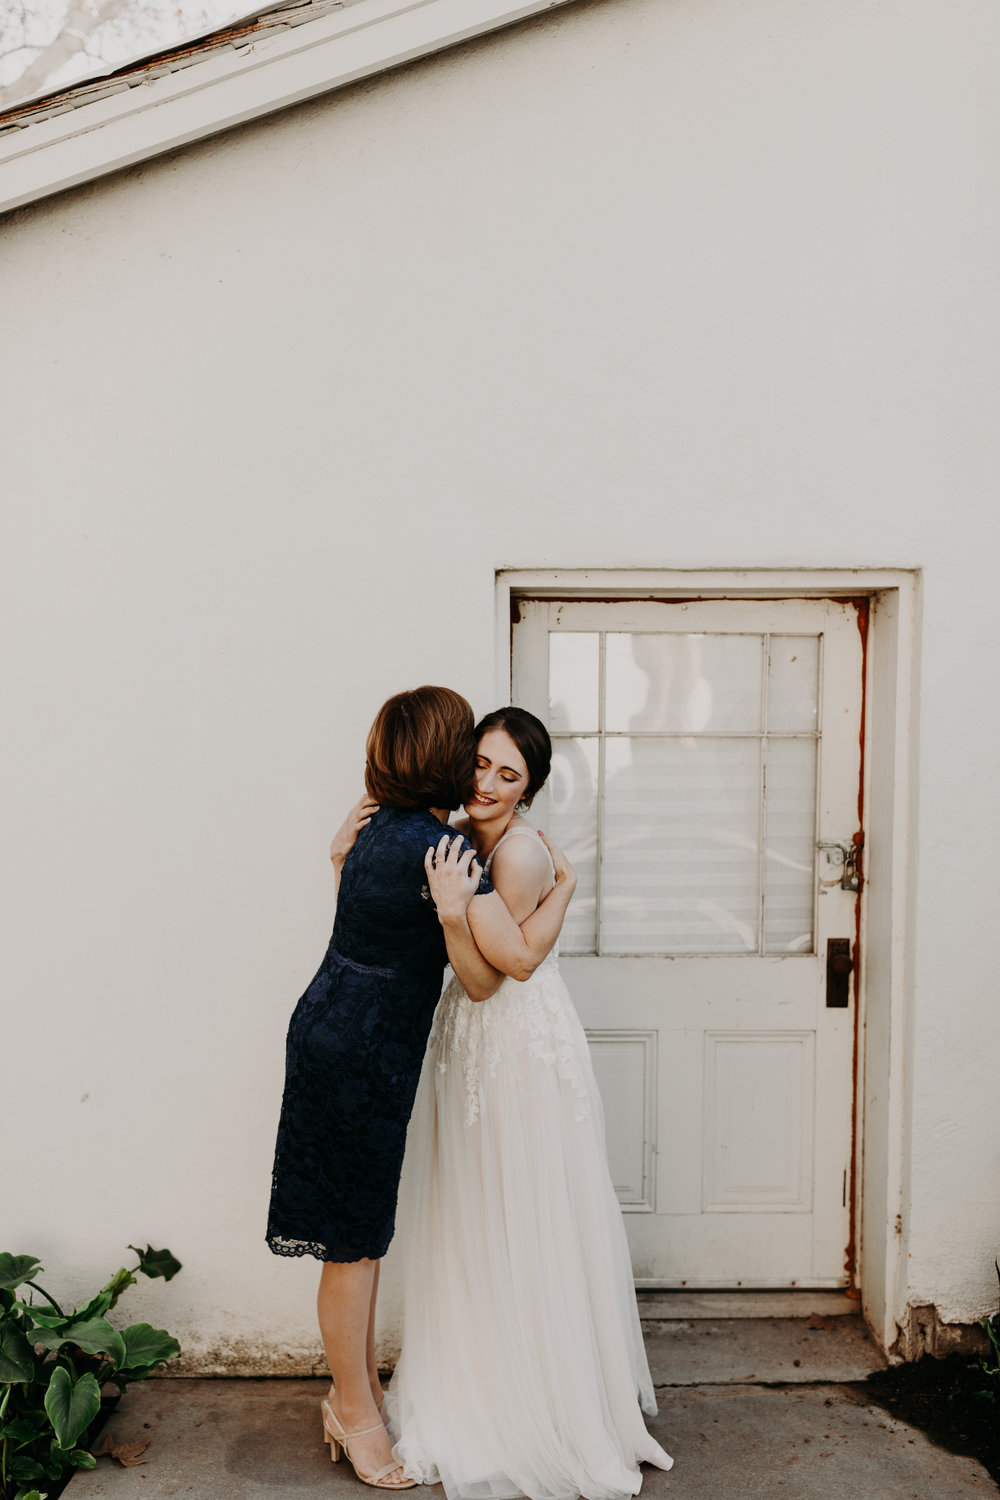 Seven Sycamores Ranch Wedding Gabby & Yosef Emily Magers Photography-122.jpg